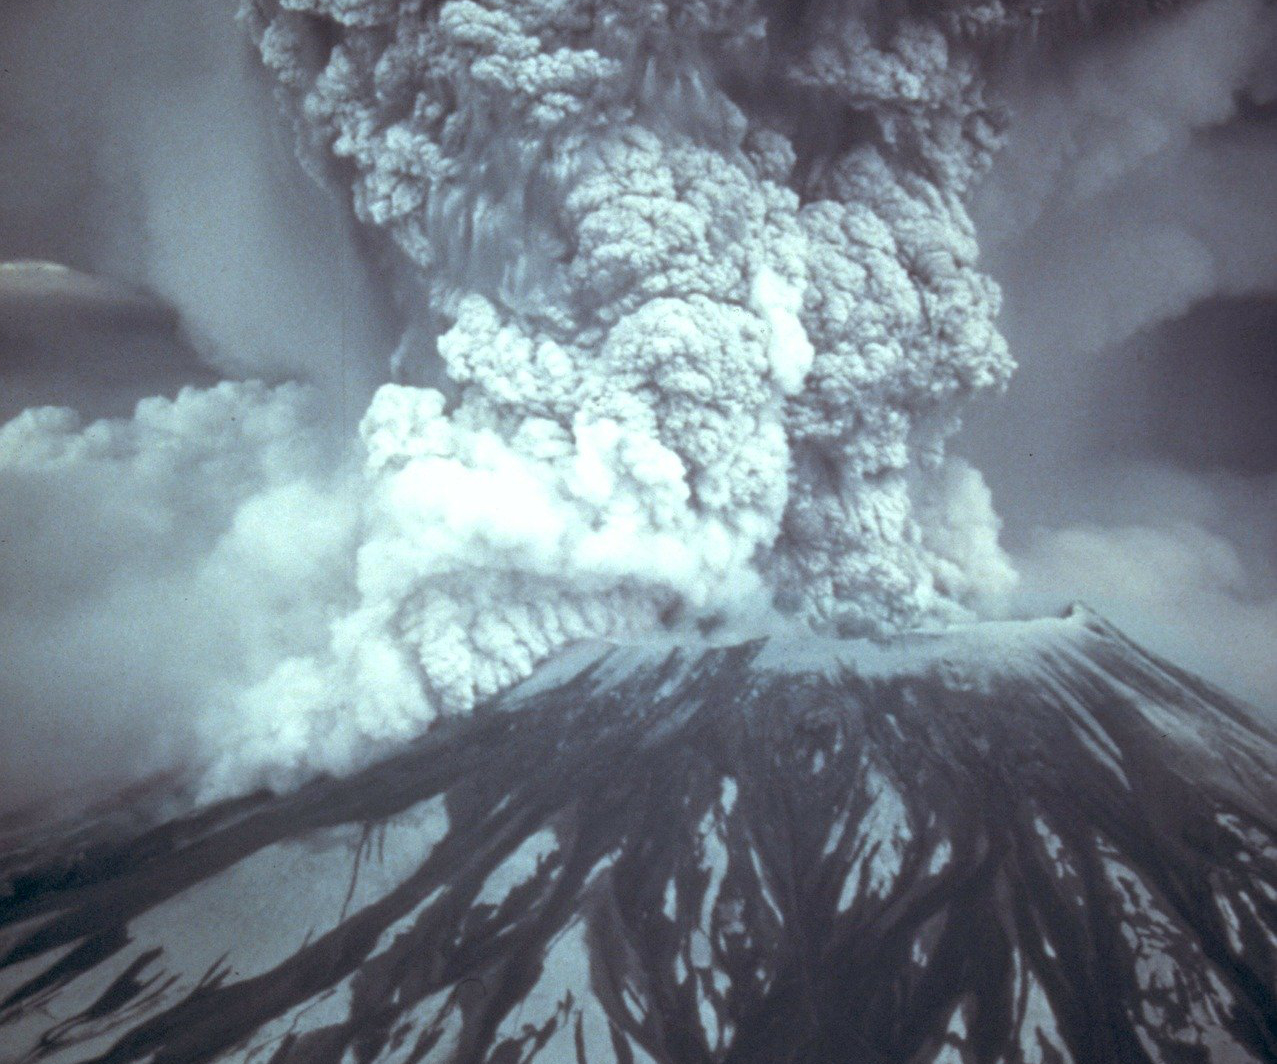 40TH ANNIVERSARY OF MOUNT ST. HELENS ERUPTION